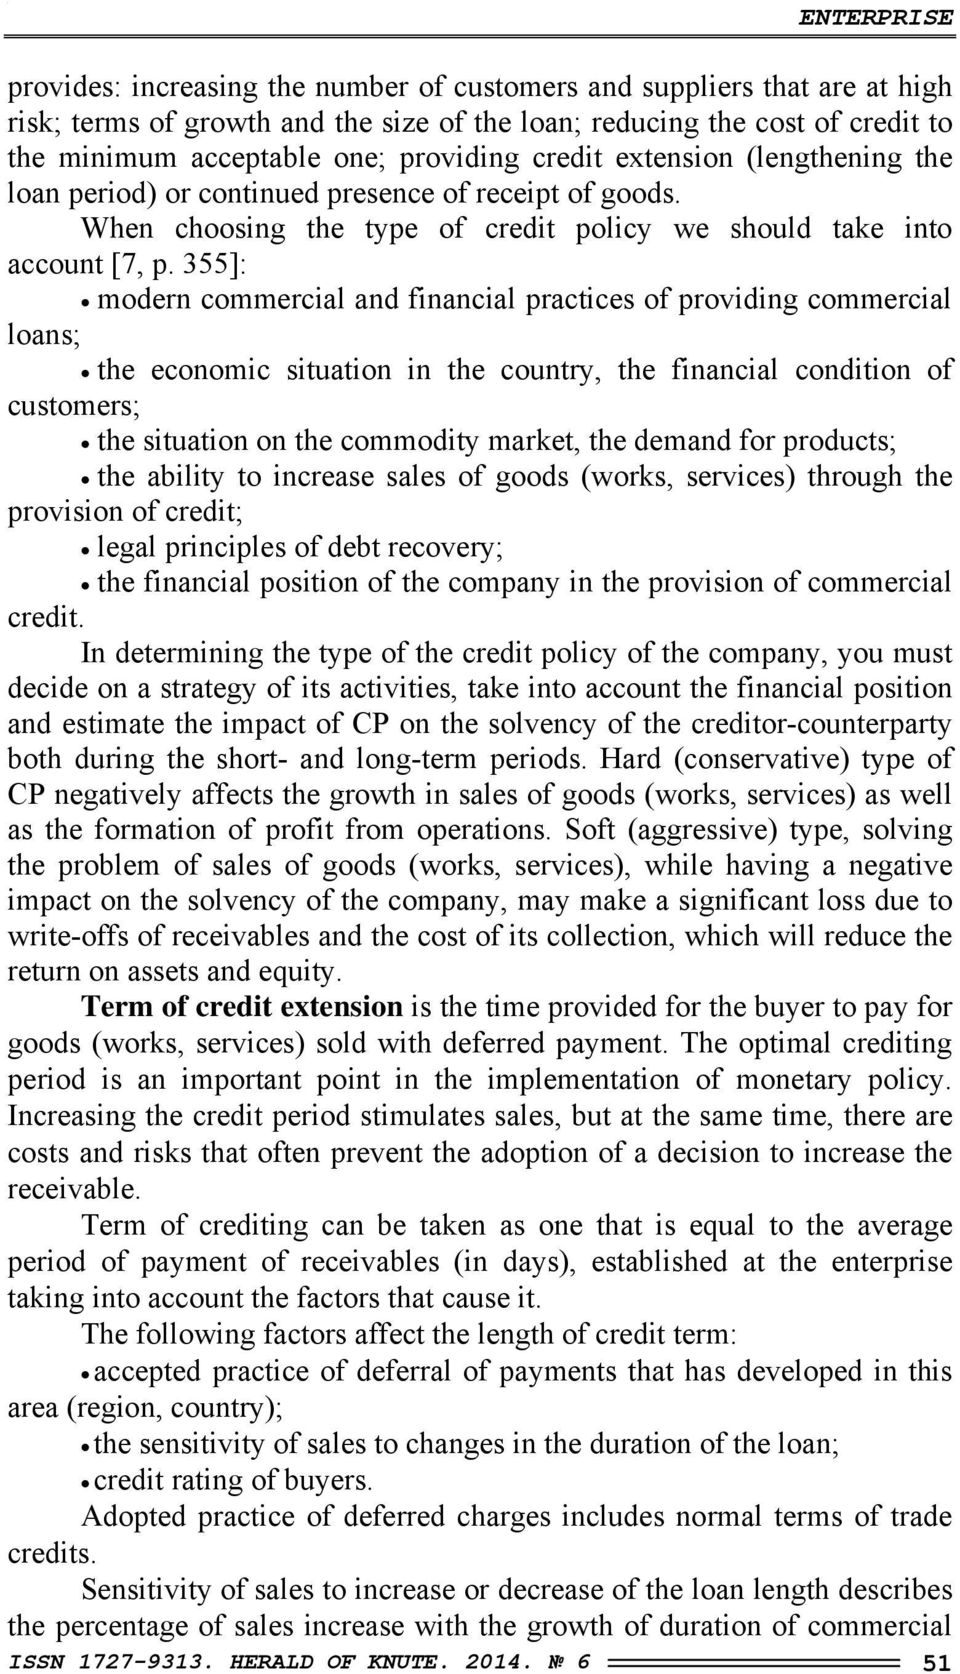 355]: modern commercial and financial practices of providing commercial loans; the economic situation in the country, the financial condition of customers; the situation on the commodity market, the